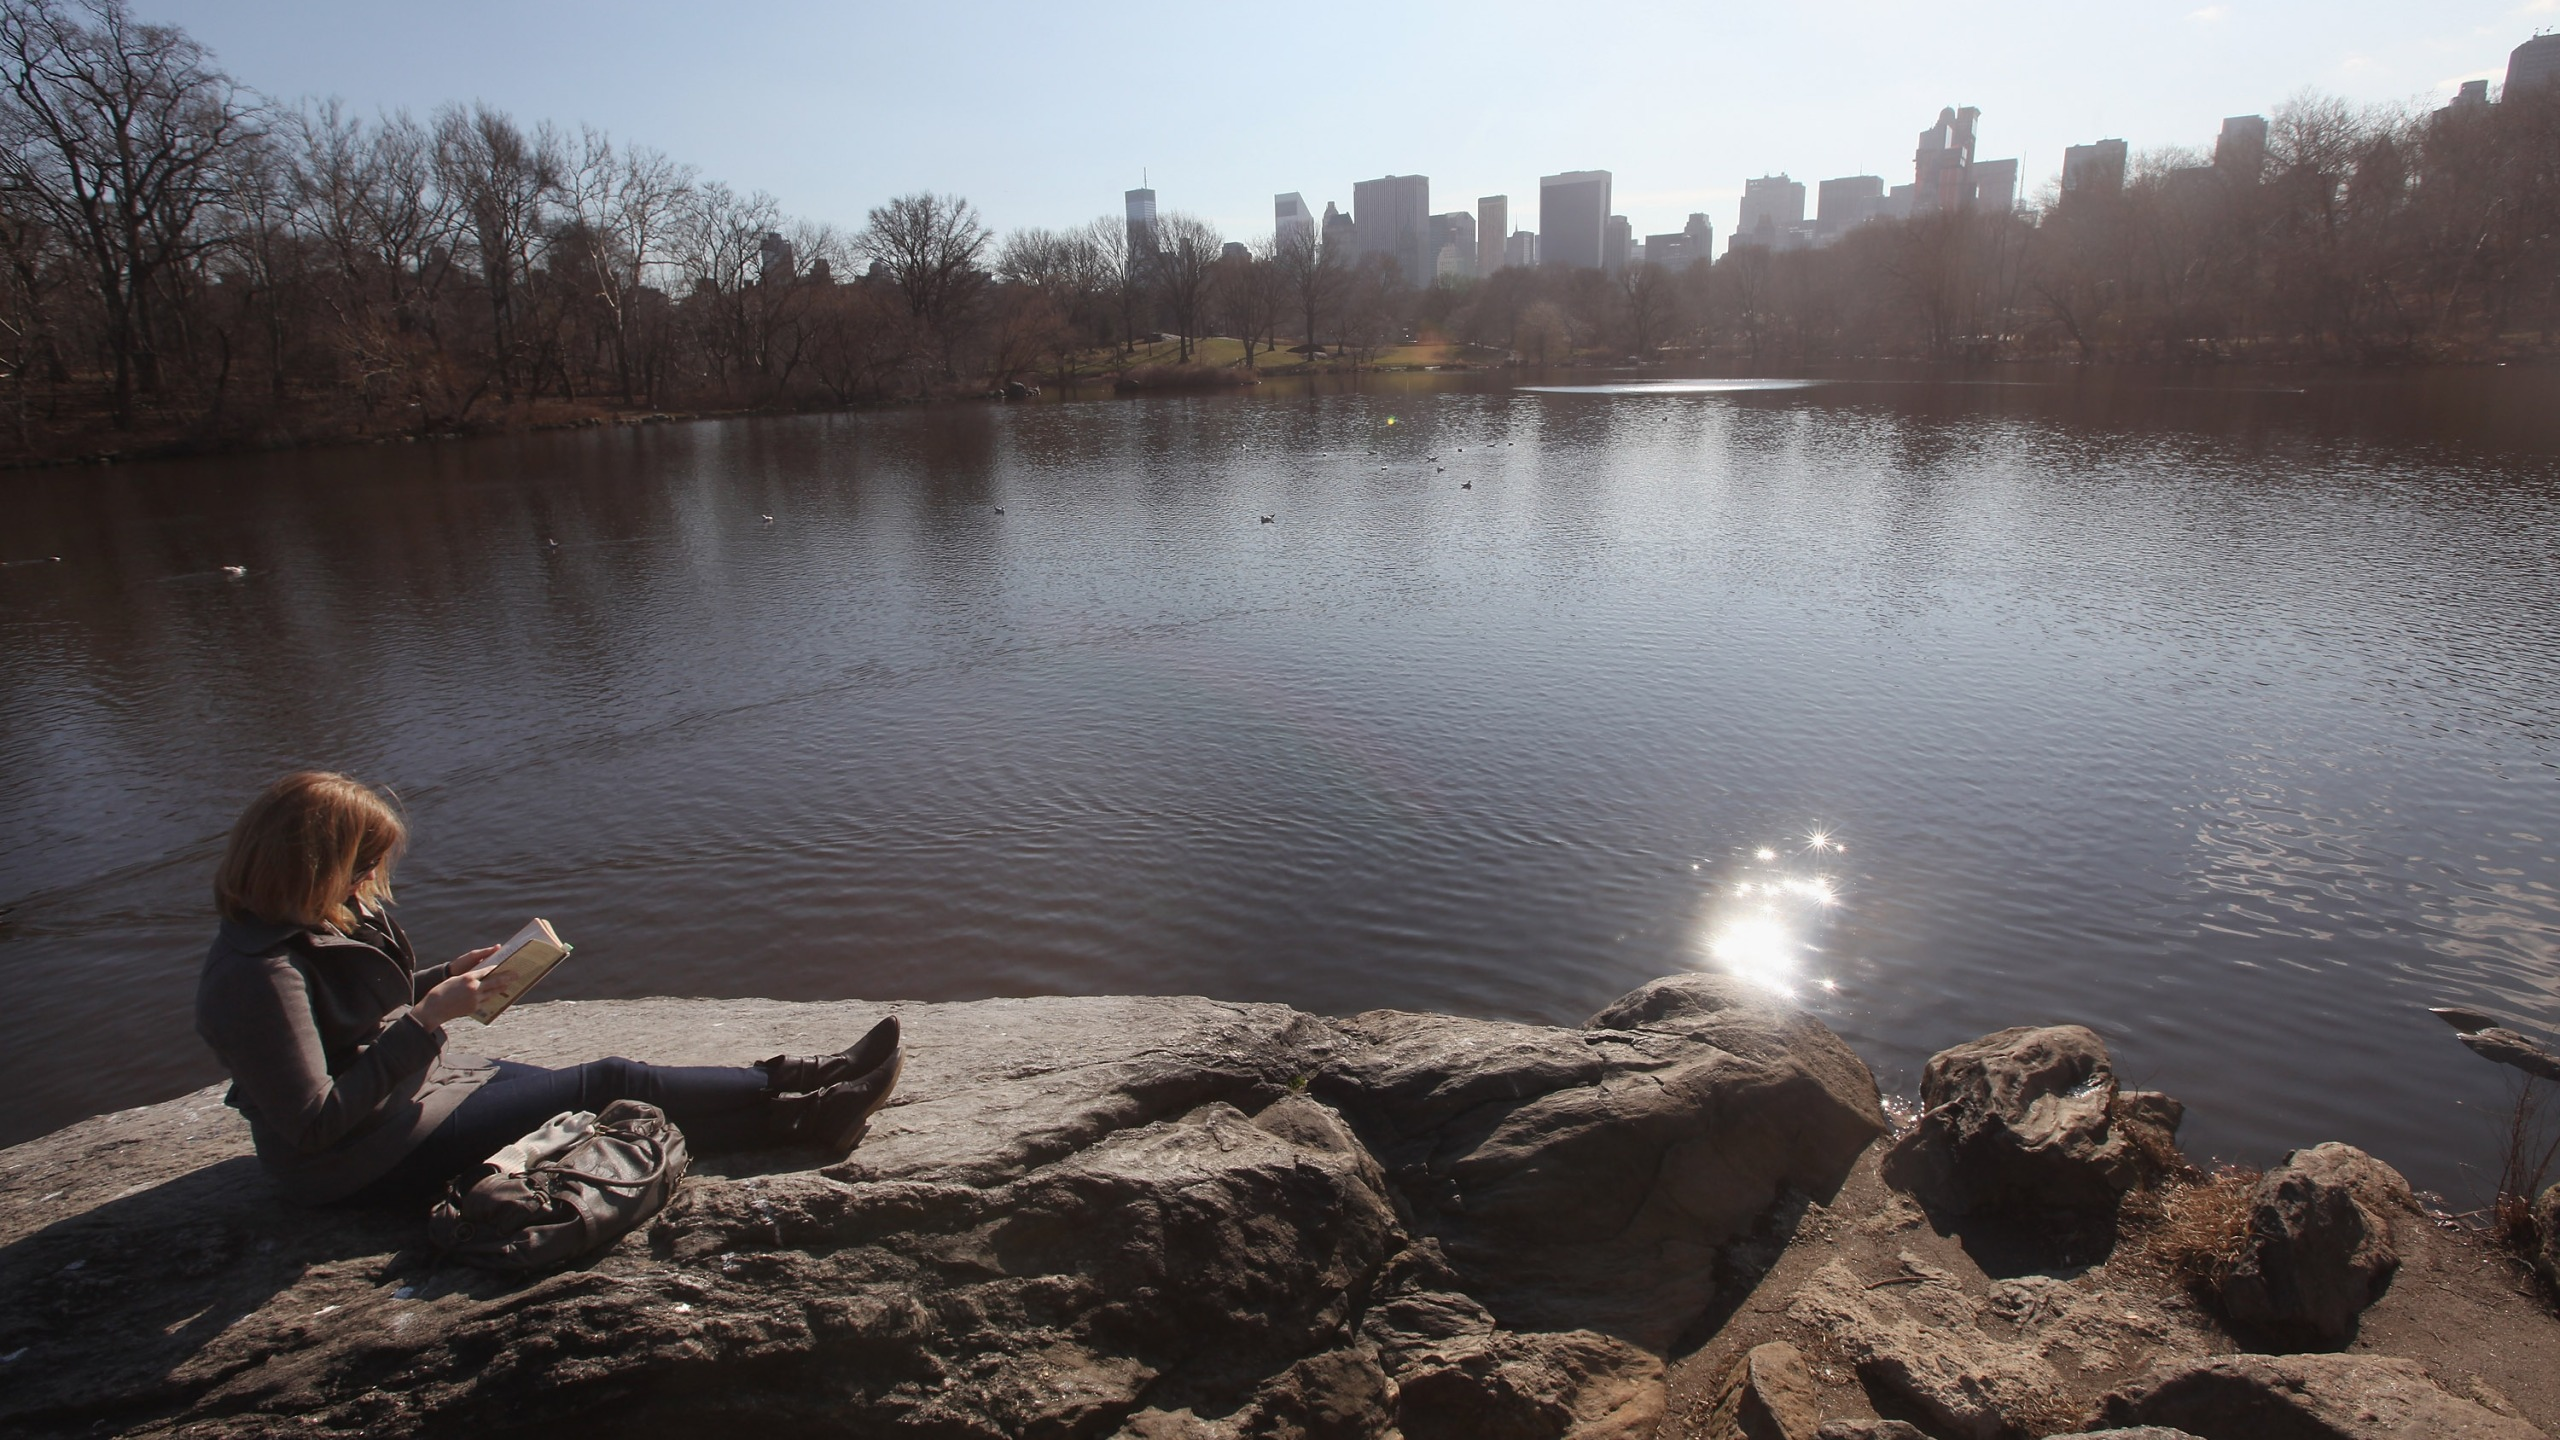 Sunny, mild weather in New York CIty